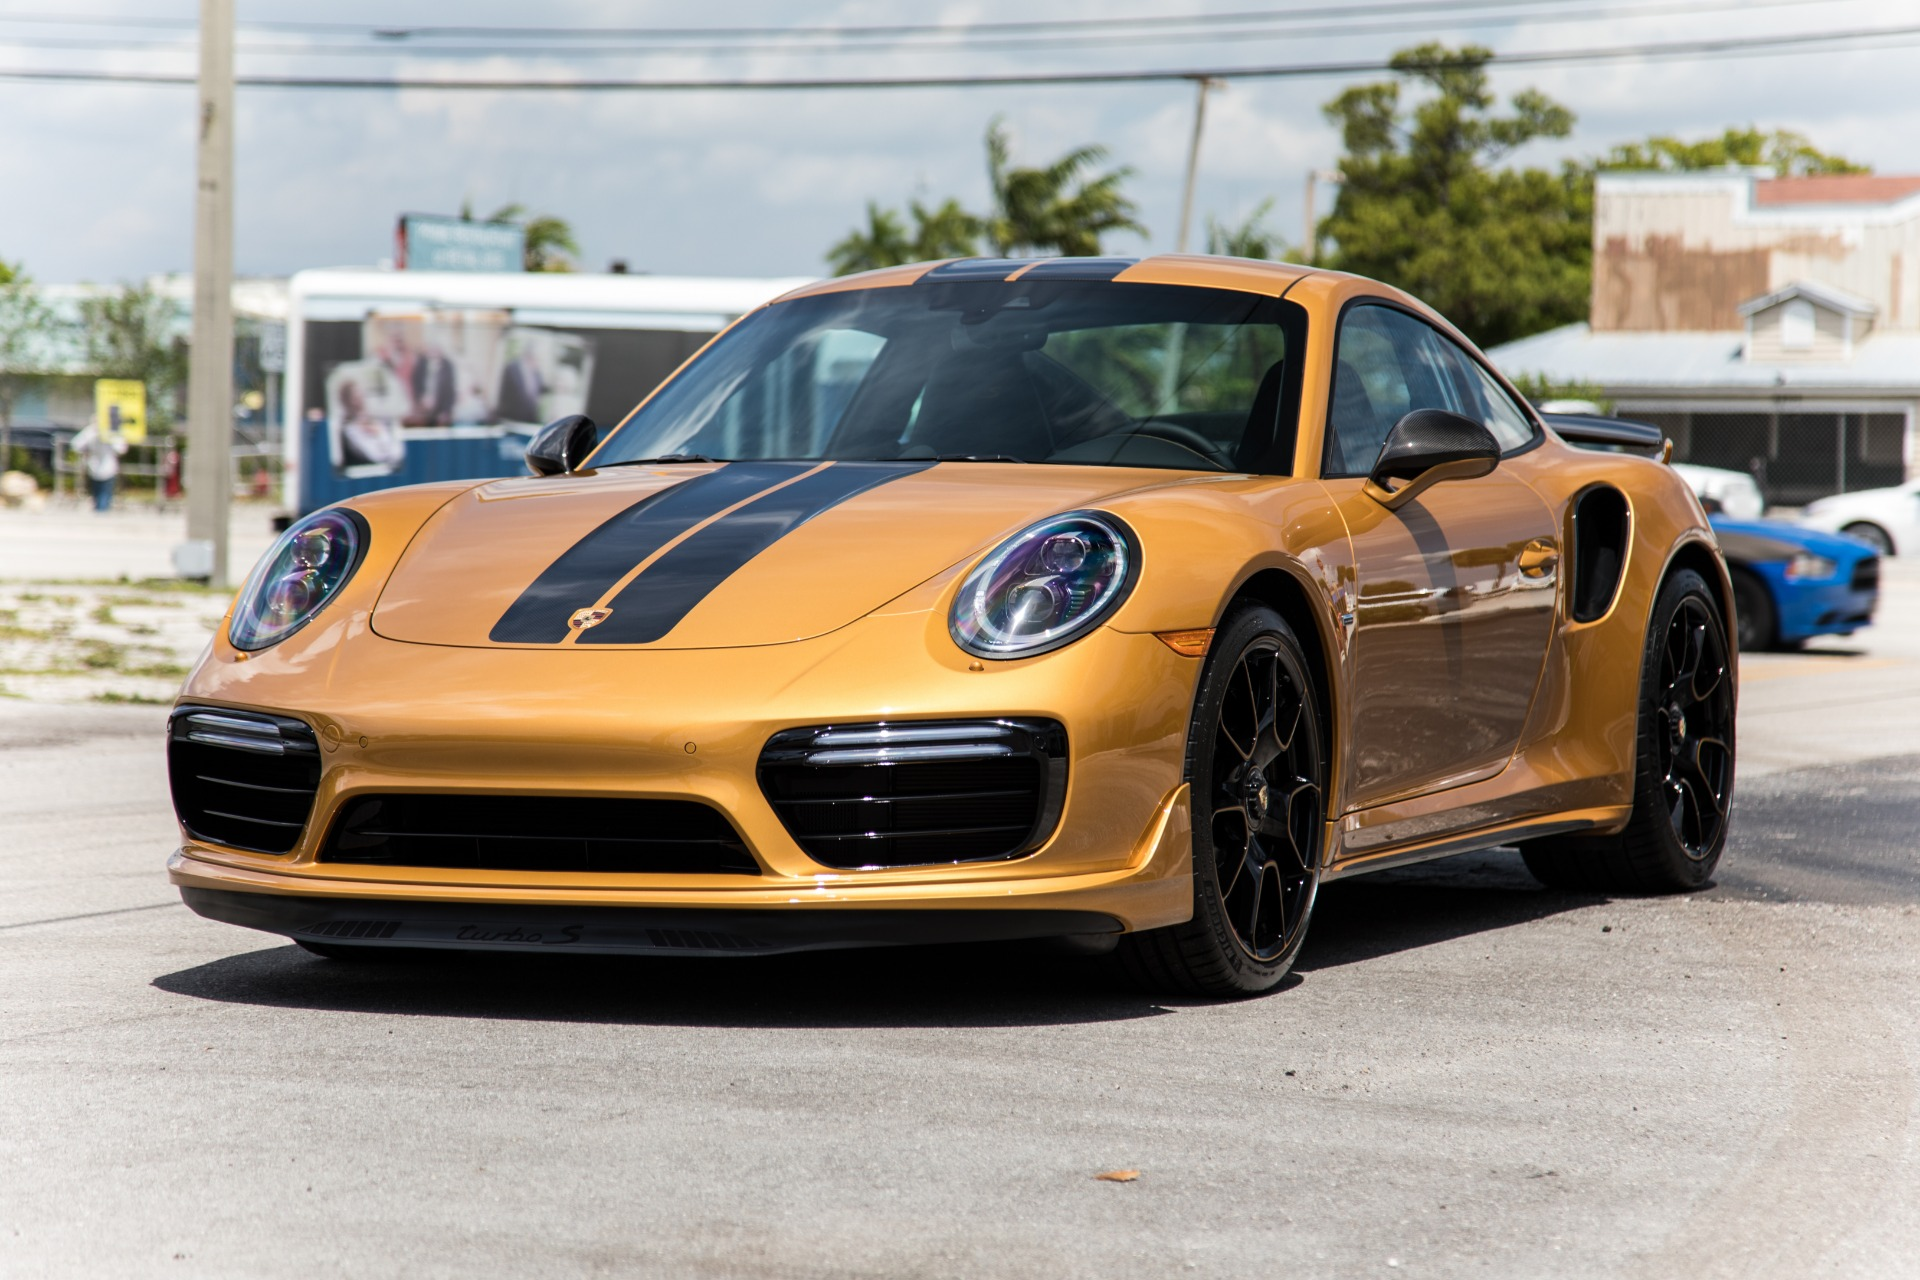 Used-2018-Porsche-911-Turbo-S-Exclusive-Series